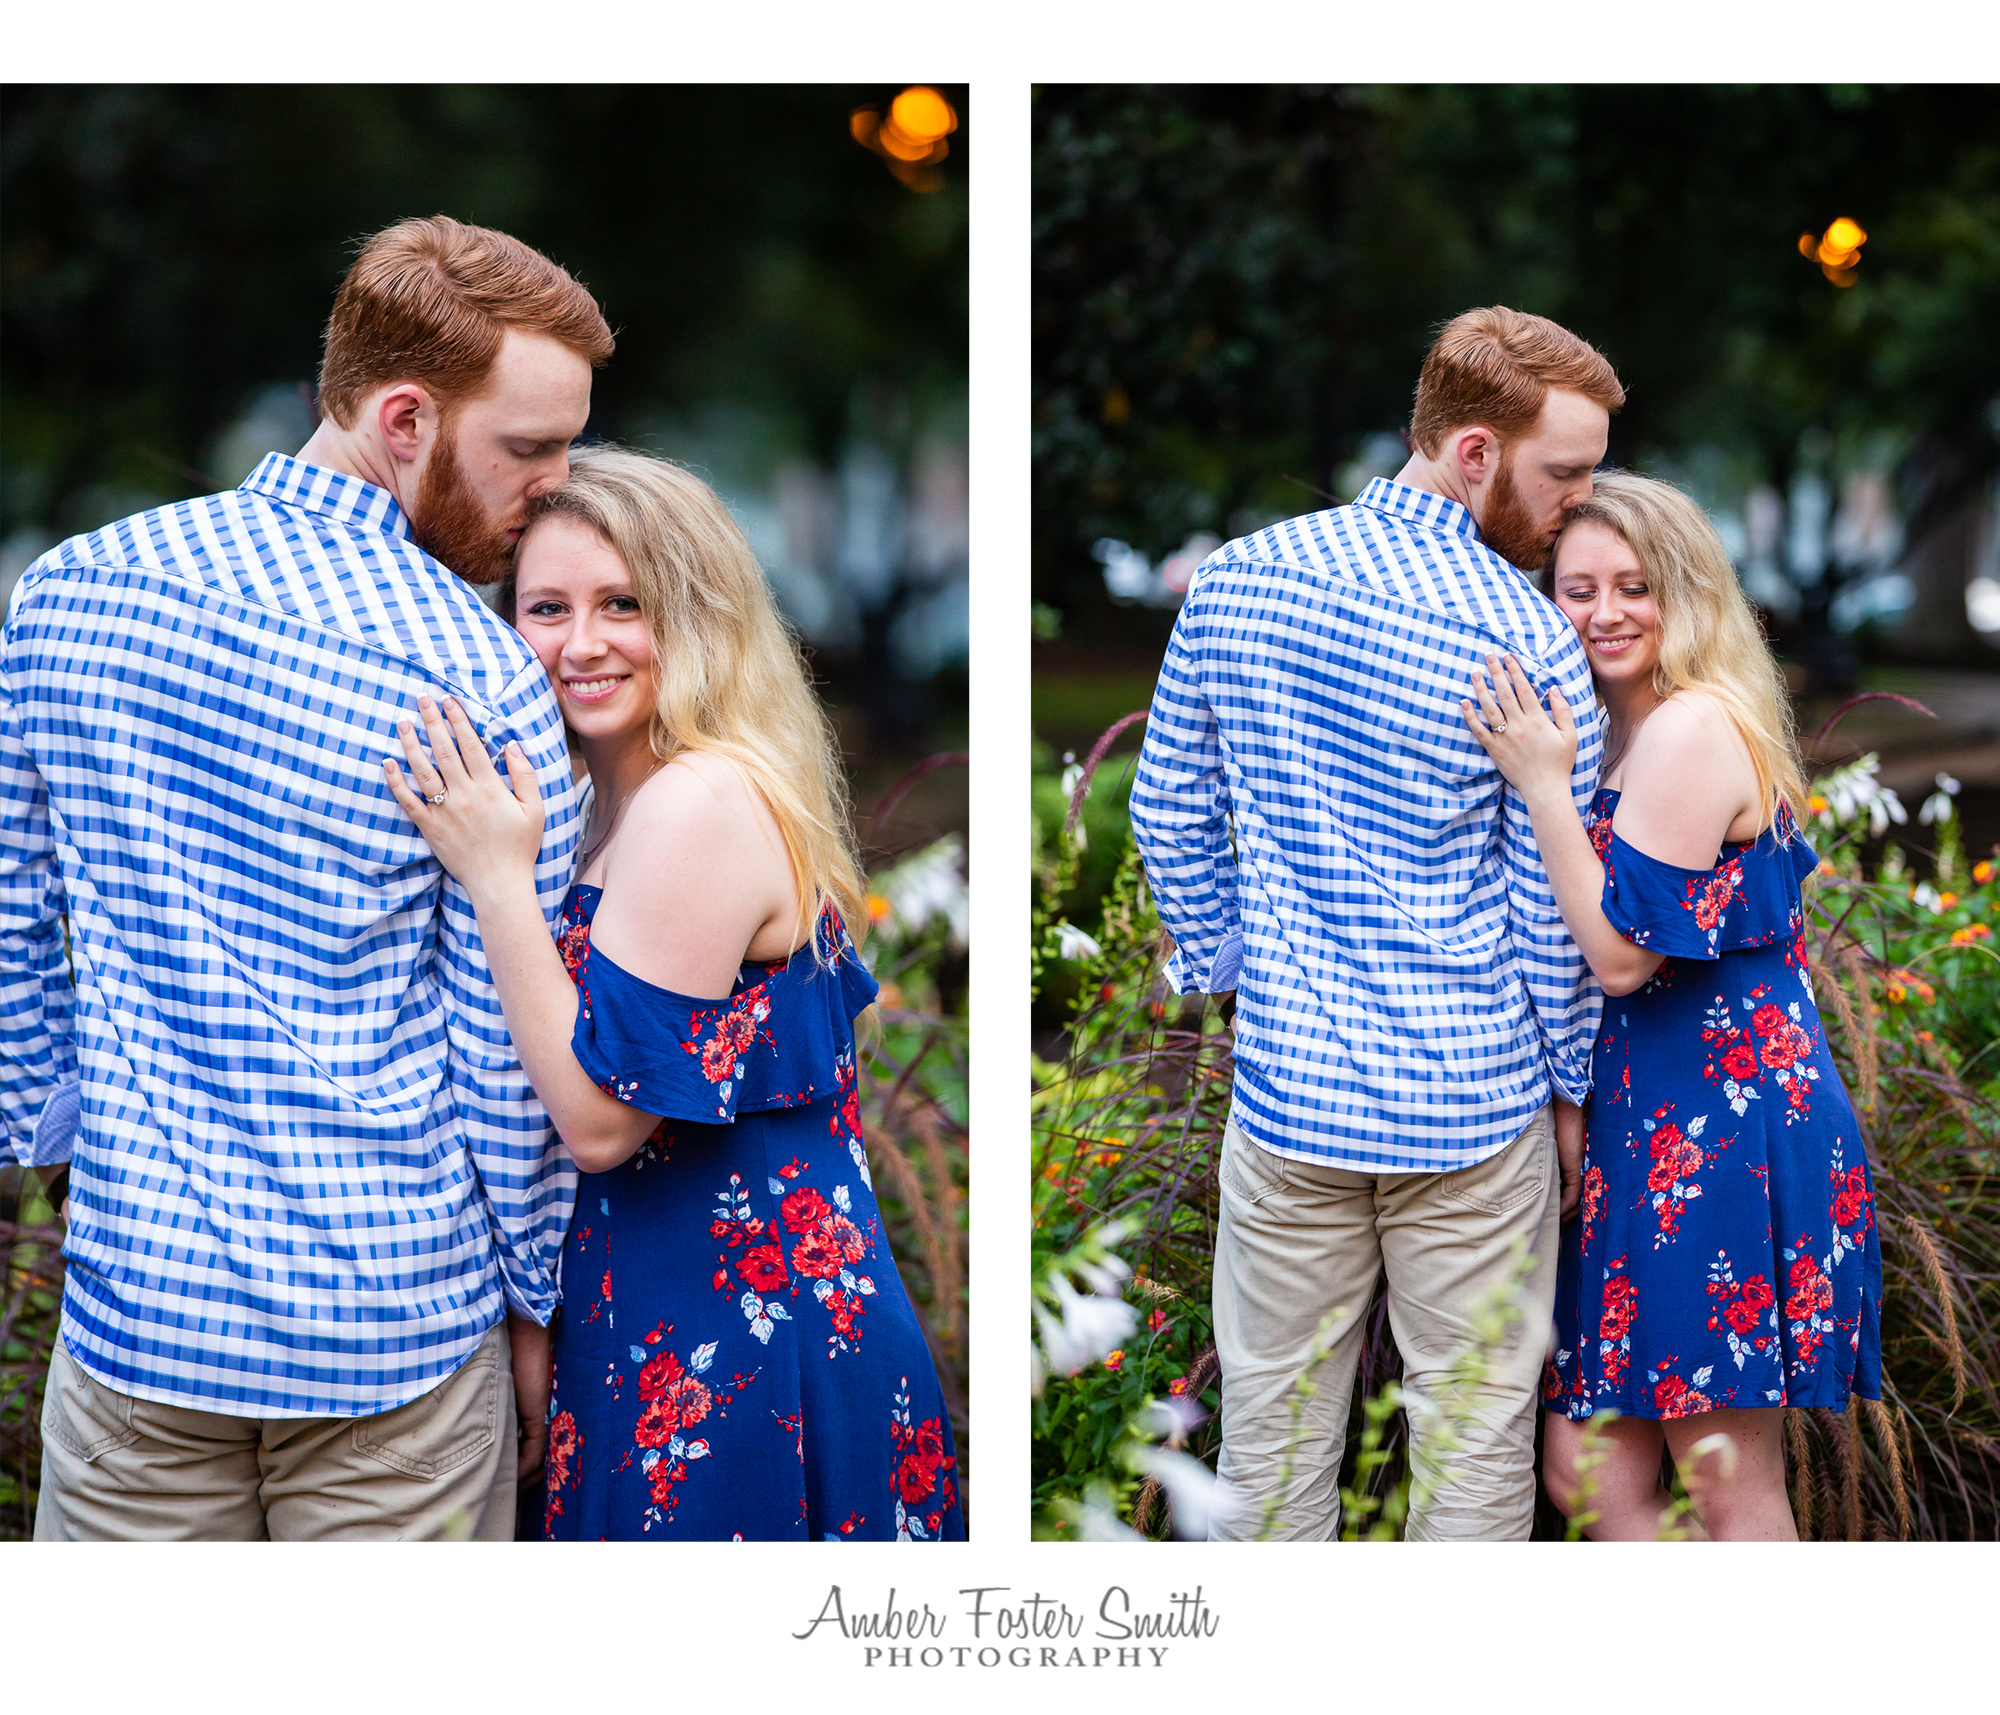 Amber Foster Smith Photography - Holly Springs, NC | Raleigh Engagement and Wedding Photography